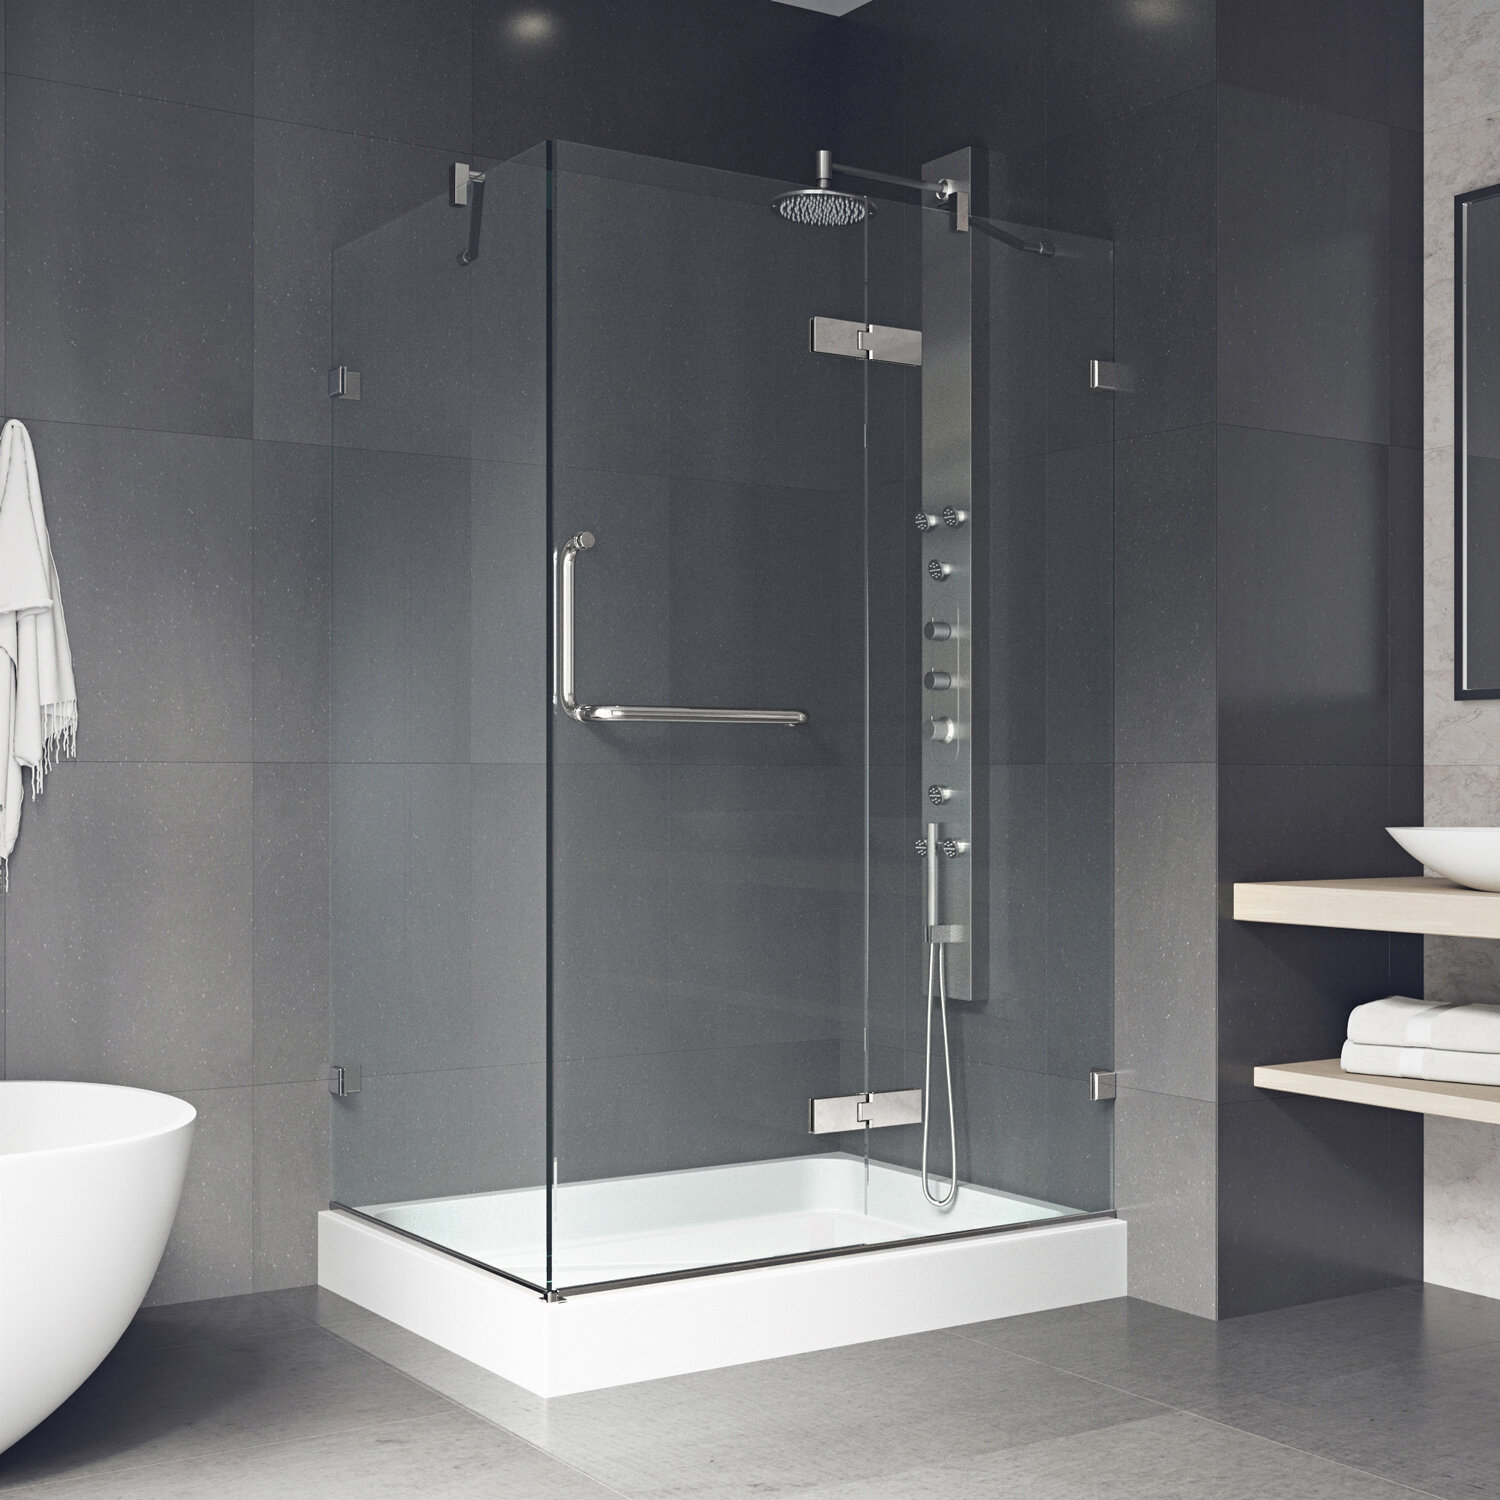 Shower 38 31 X 73 Rectangle Pivot Shower Enclosure With Base Included